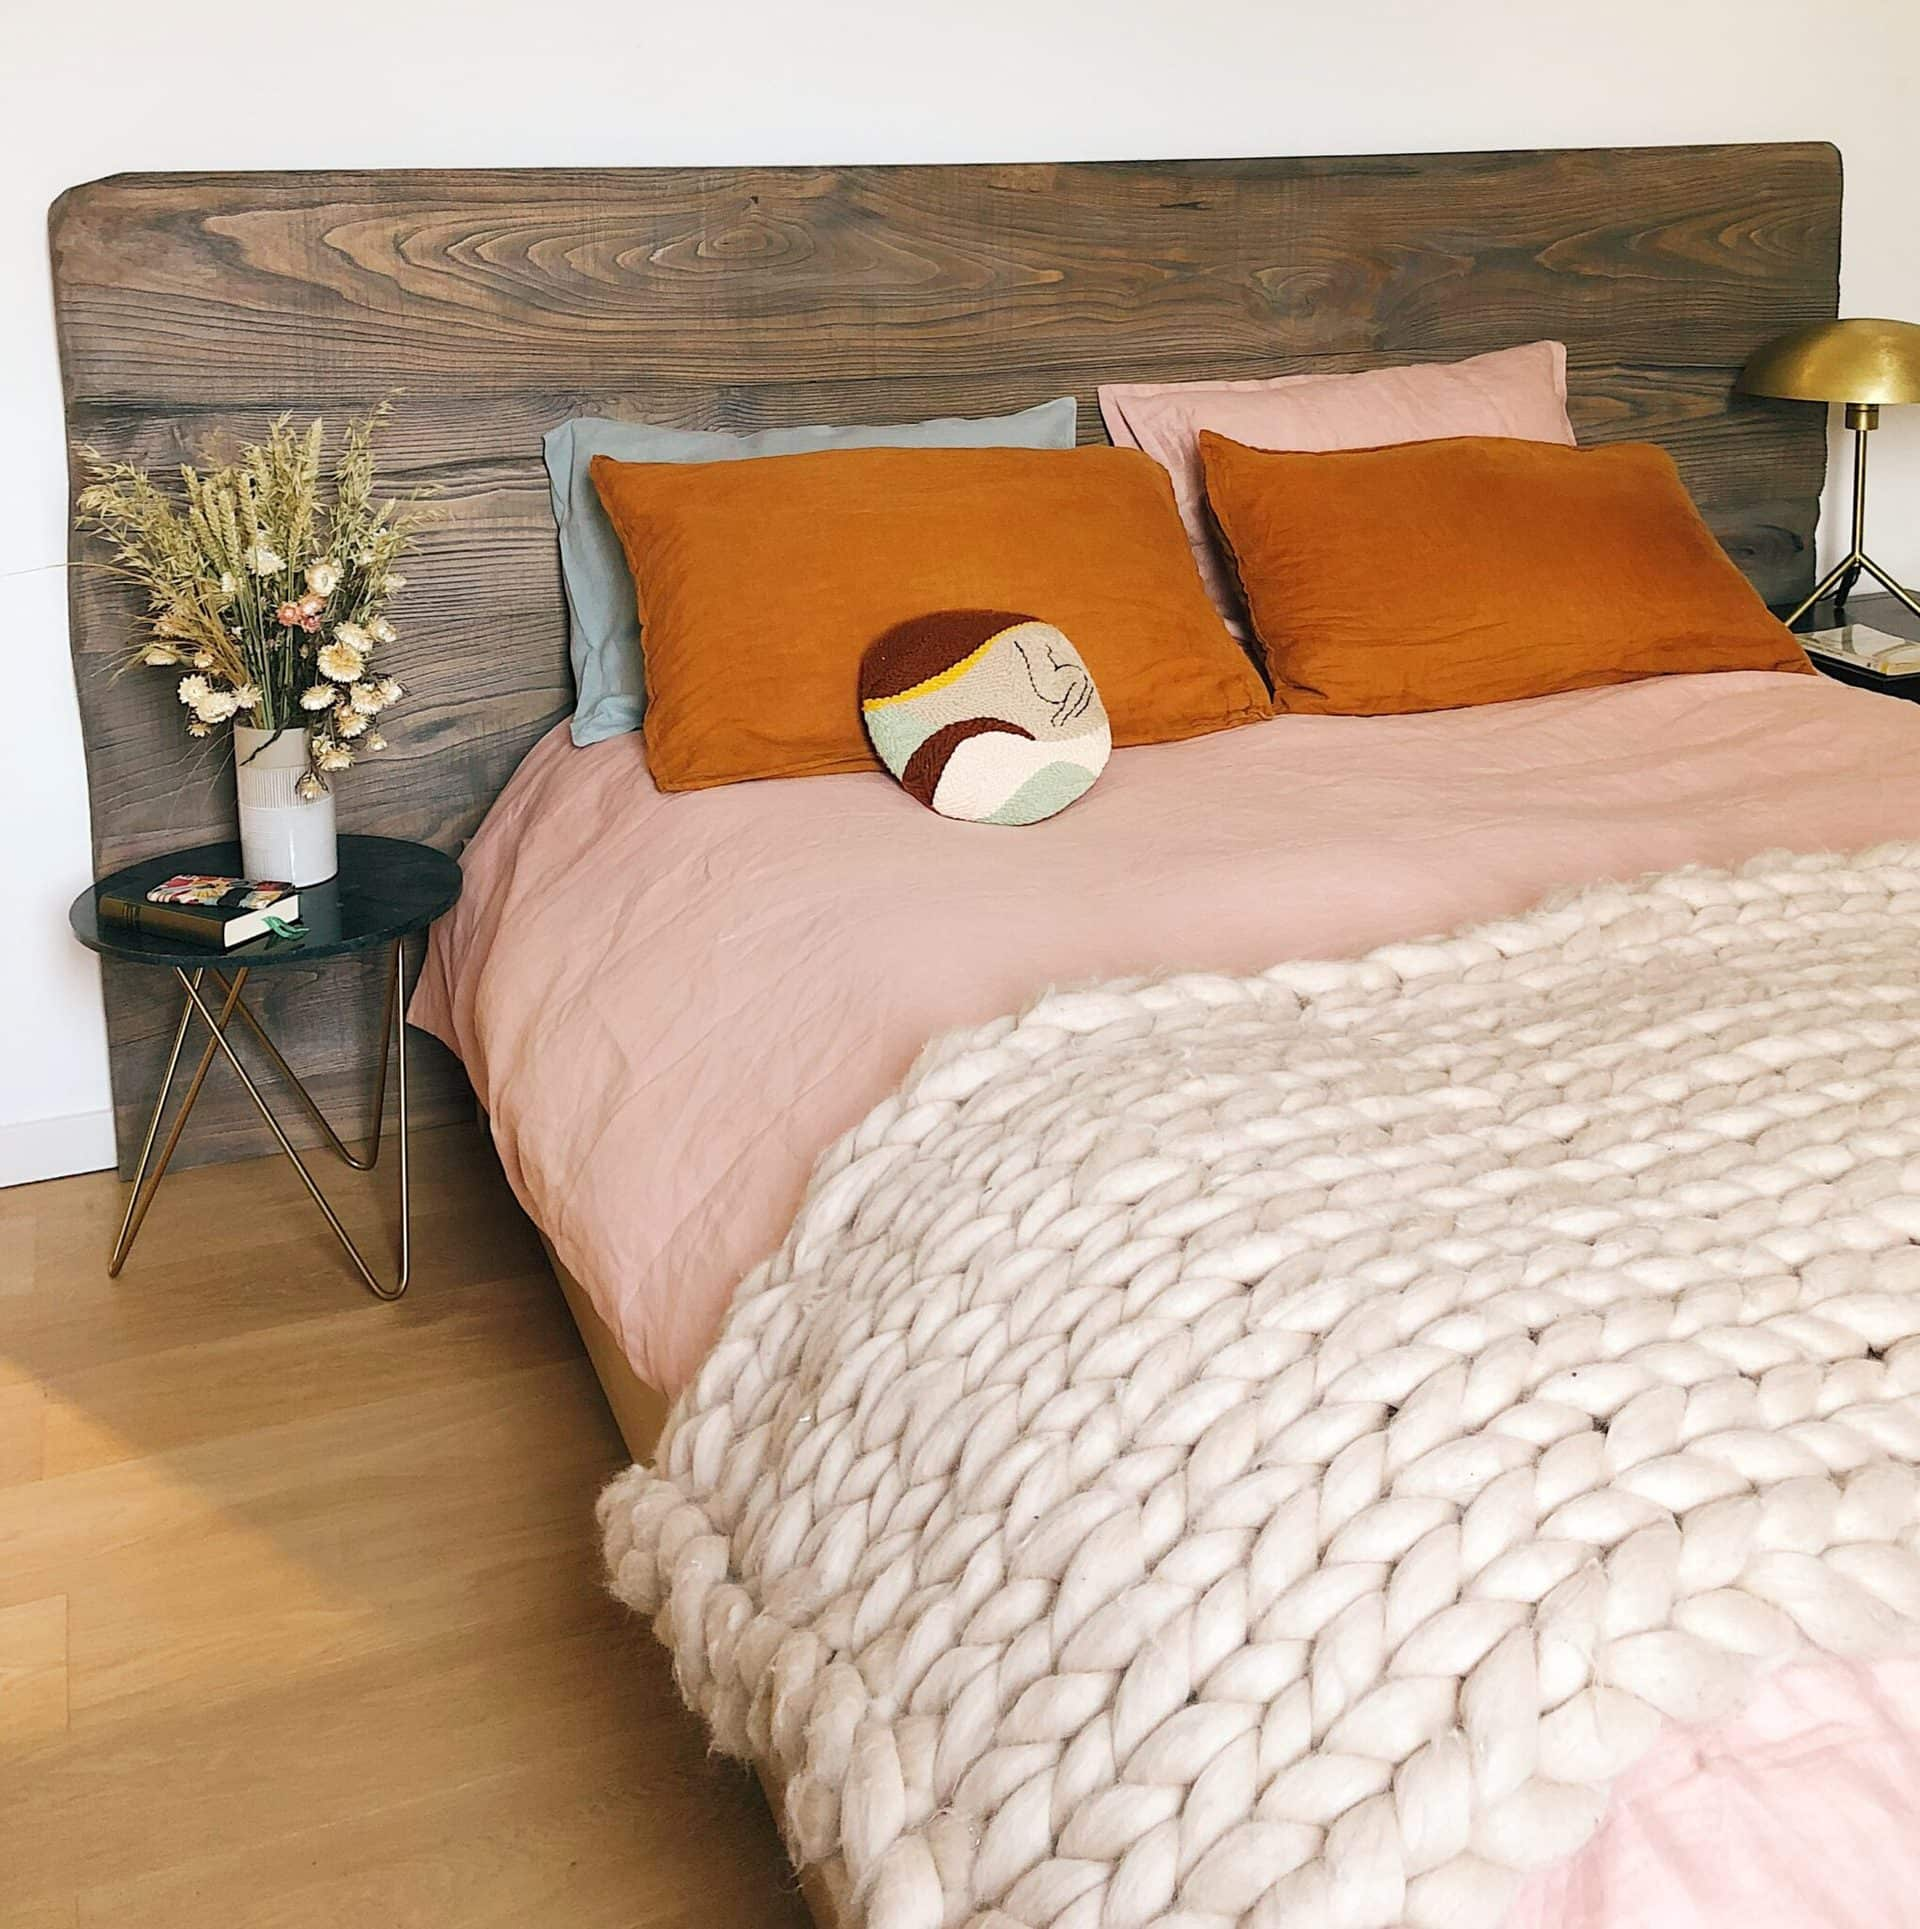 Reclaimed Wood Headboard Inspiration: 7 Headboards That Complete Your Dream Bedroom